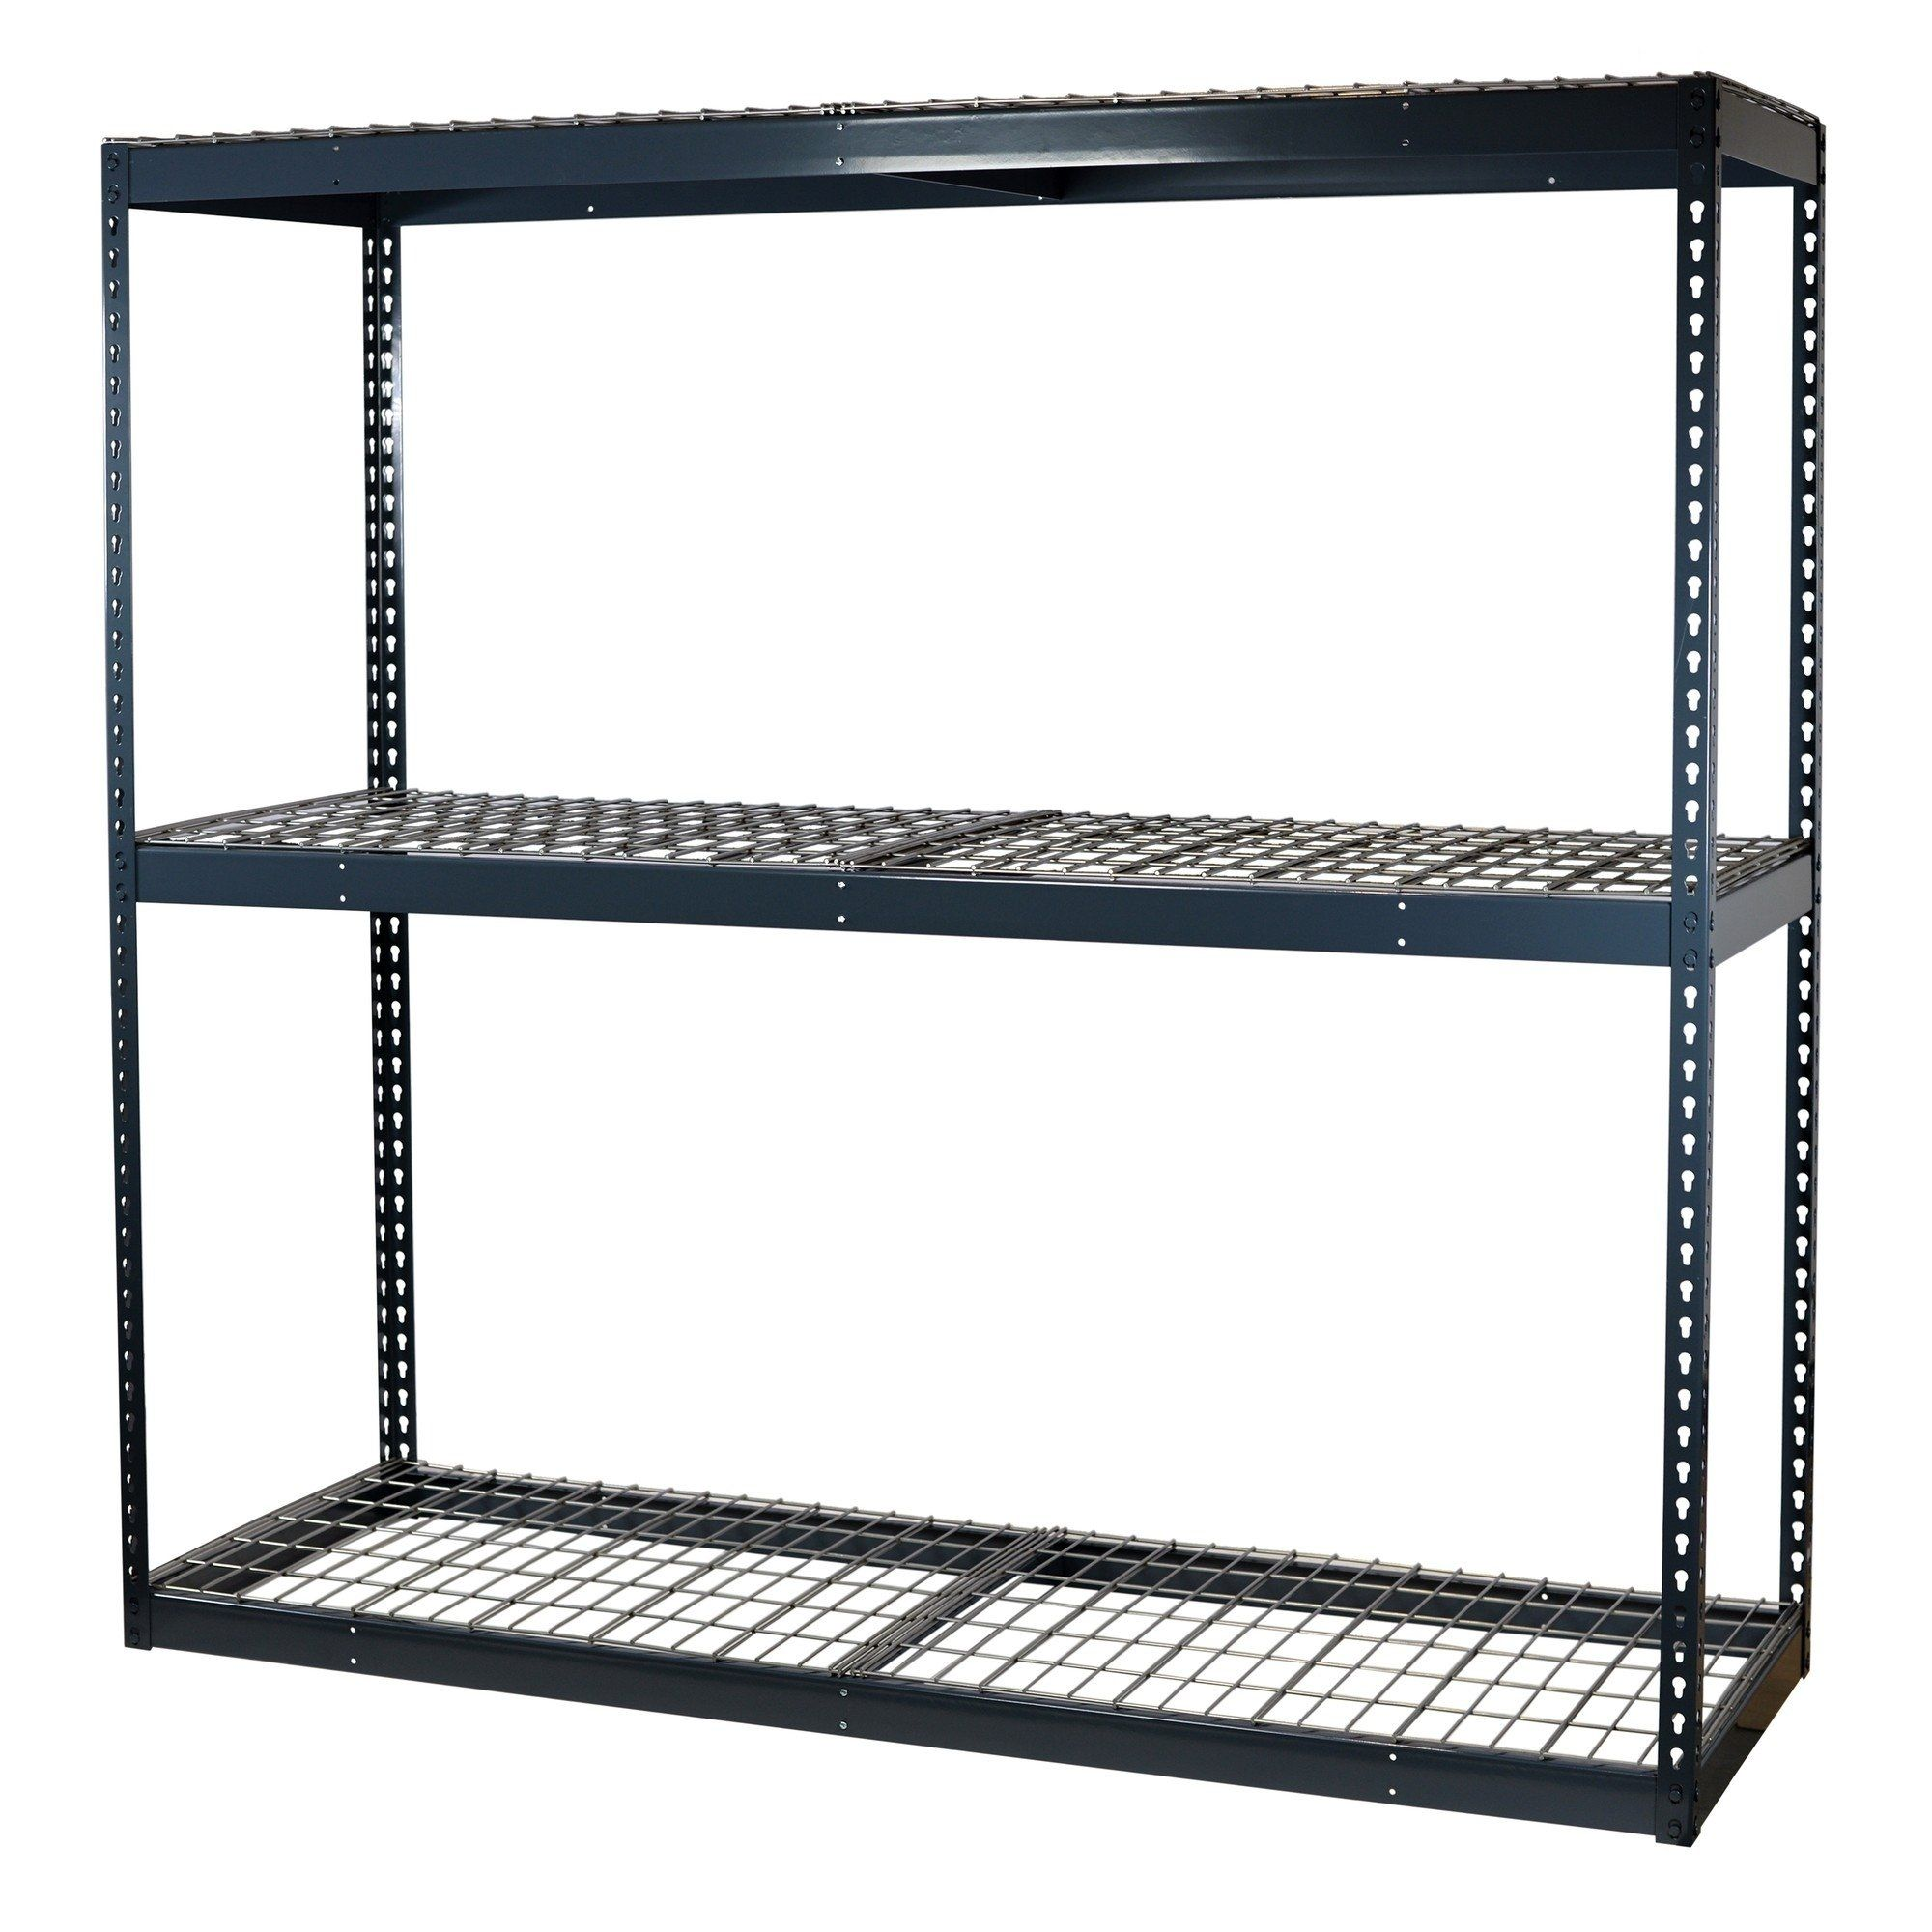 Online Shopping Bedding Furniture Electronics Jewelry Clothing More Boltless Shelving Garage Shelving Units Garage Shelving